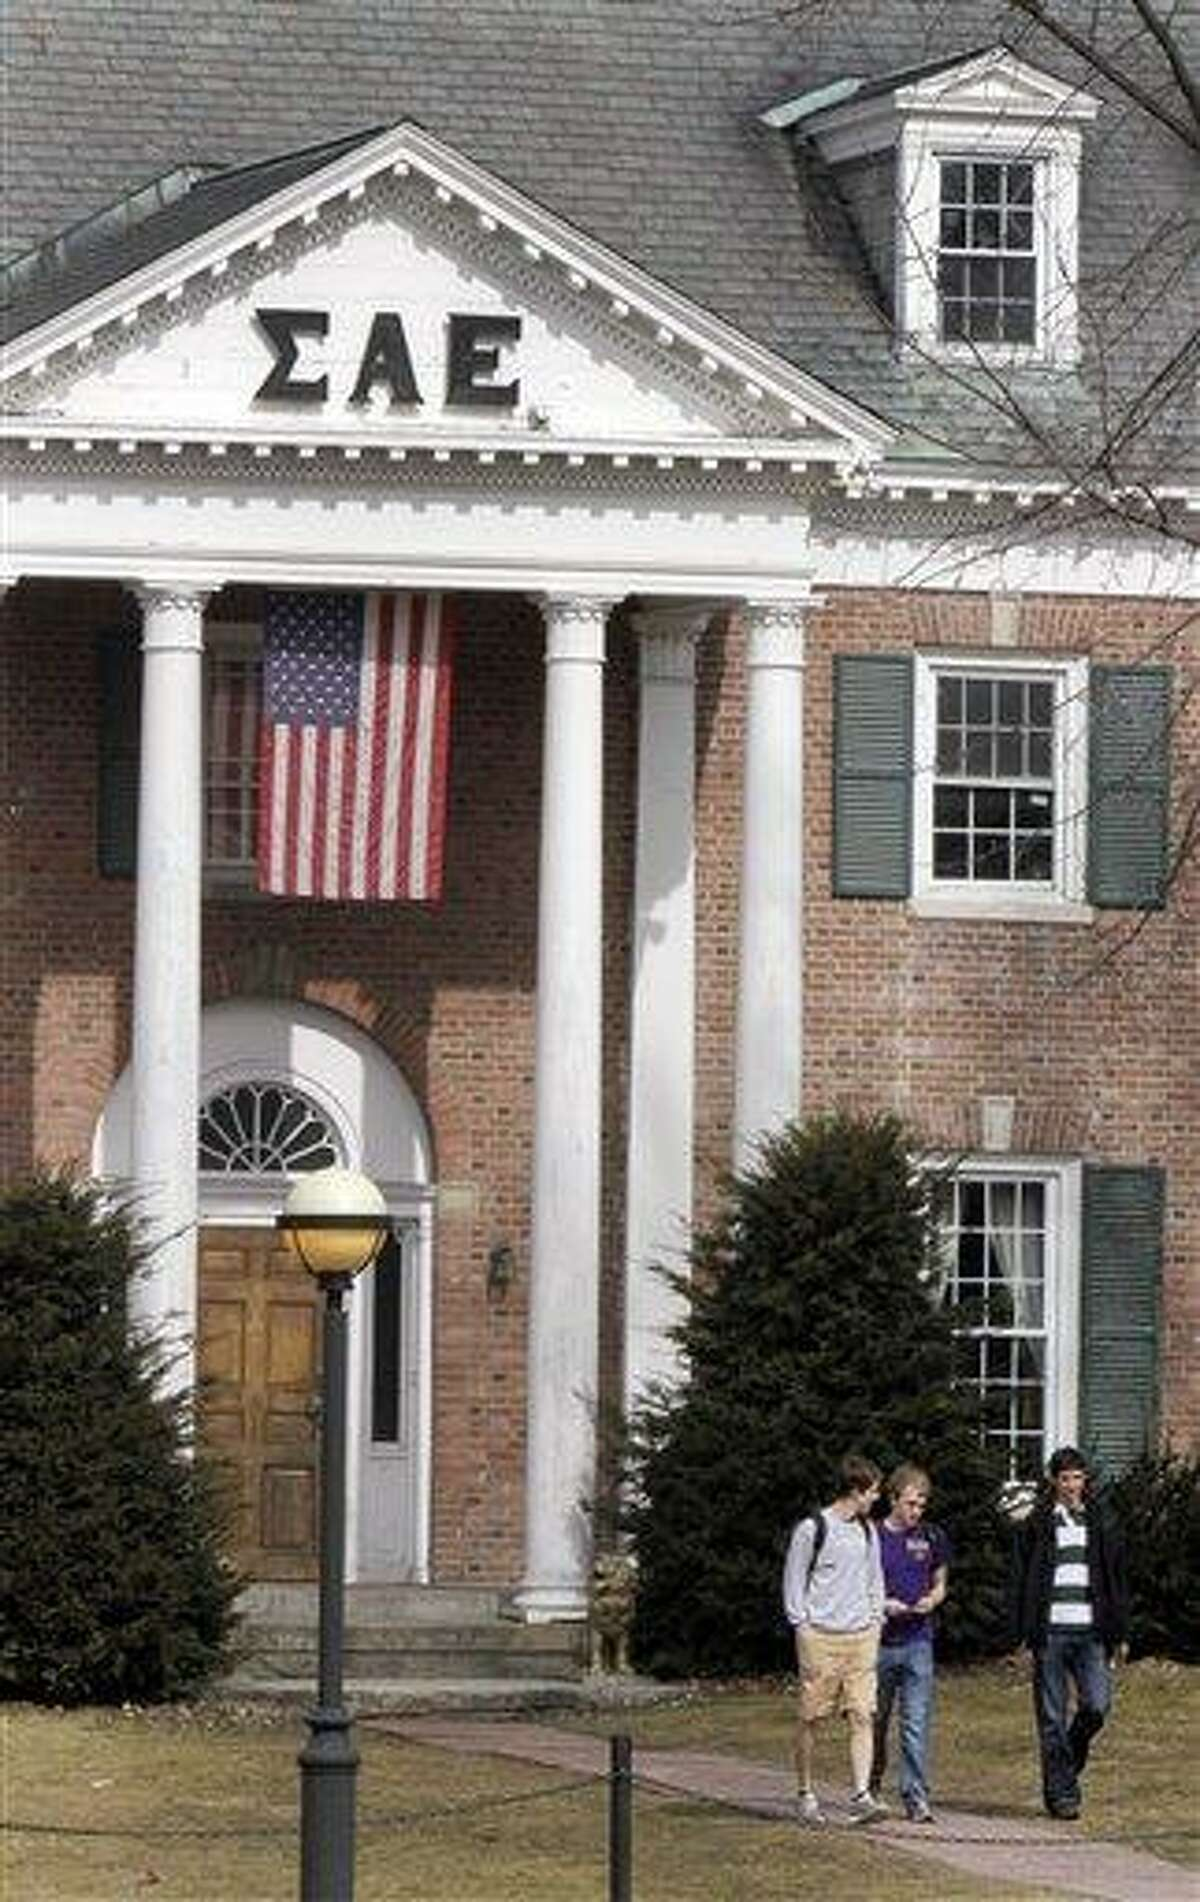 In this photo taken Monday, students leave the Sigma Alpha Epsilon fraternity on the Dartmouth College campus in Hanover, N.H. More than a quarter of the fraternity's membership has been accused by the school's judicial council of hazing after a former member alleged disgusting hazing practices. Associated Press